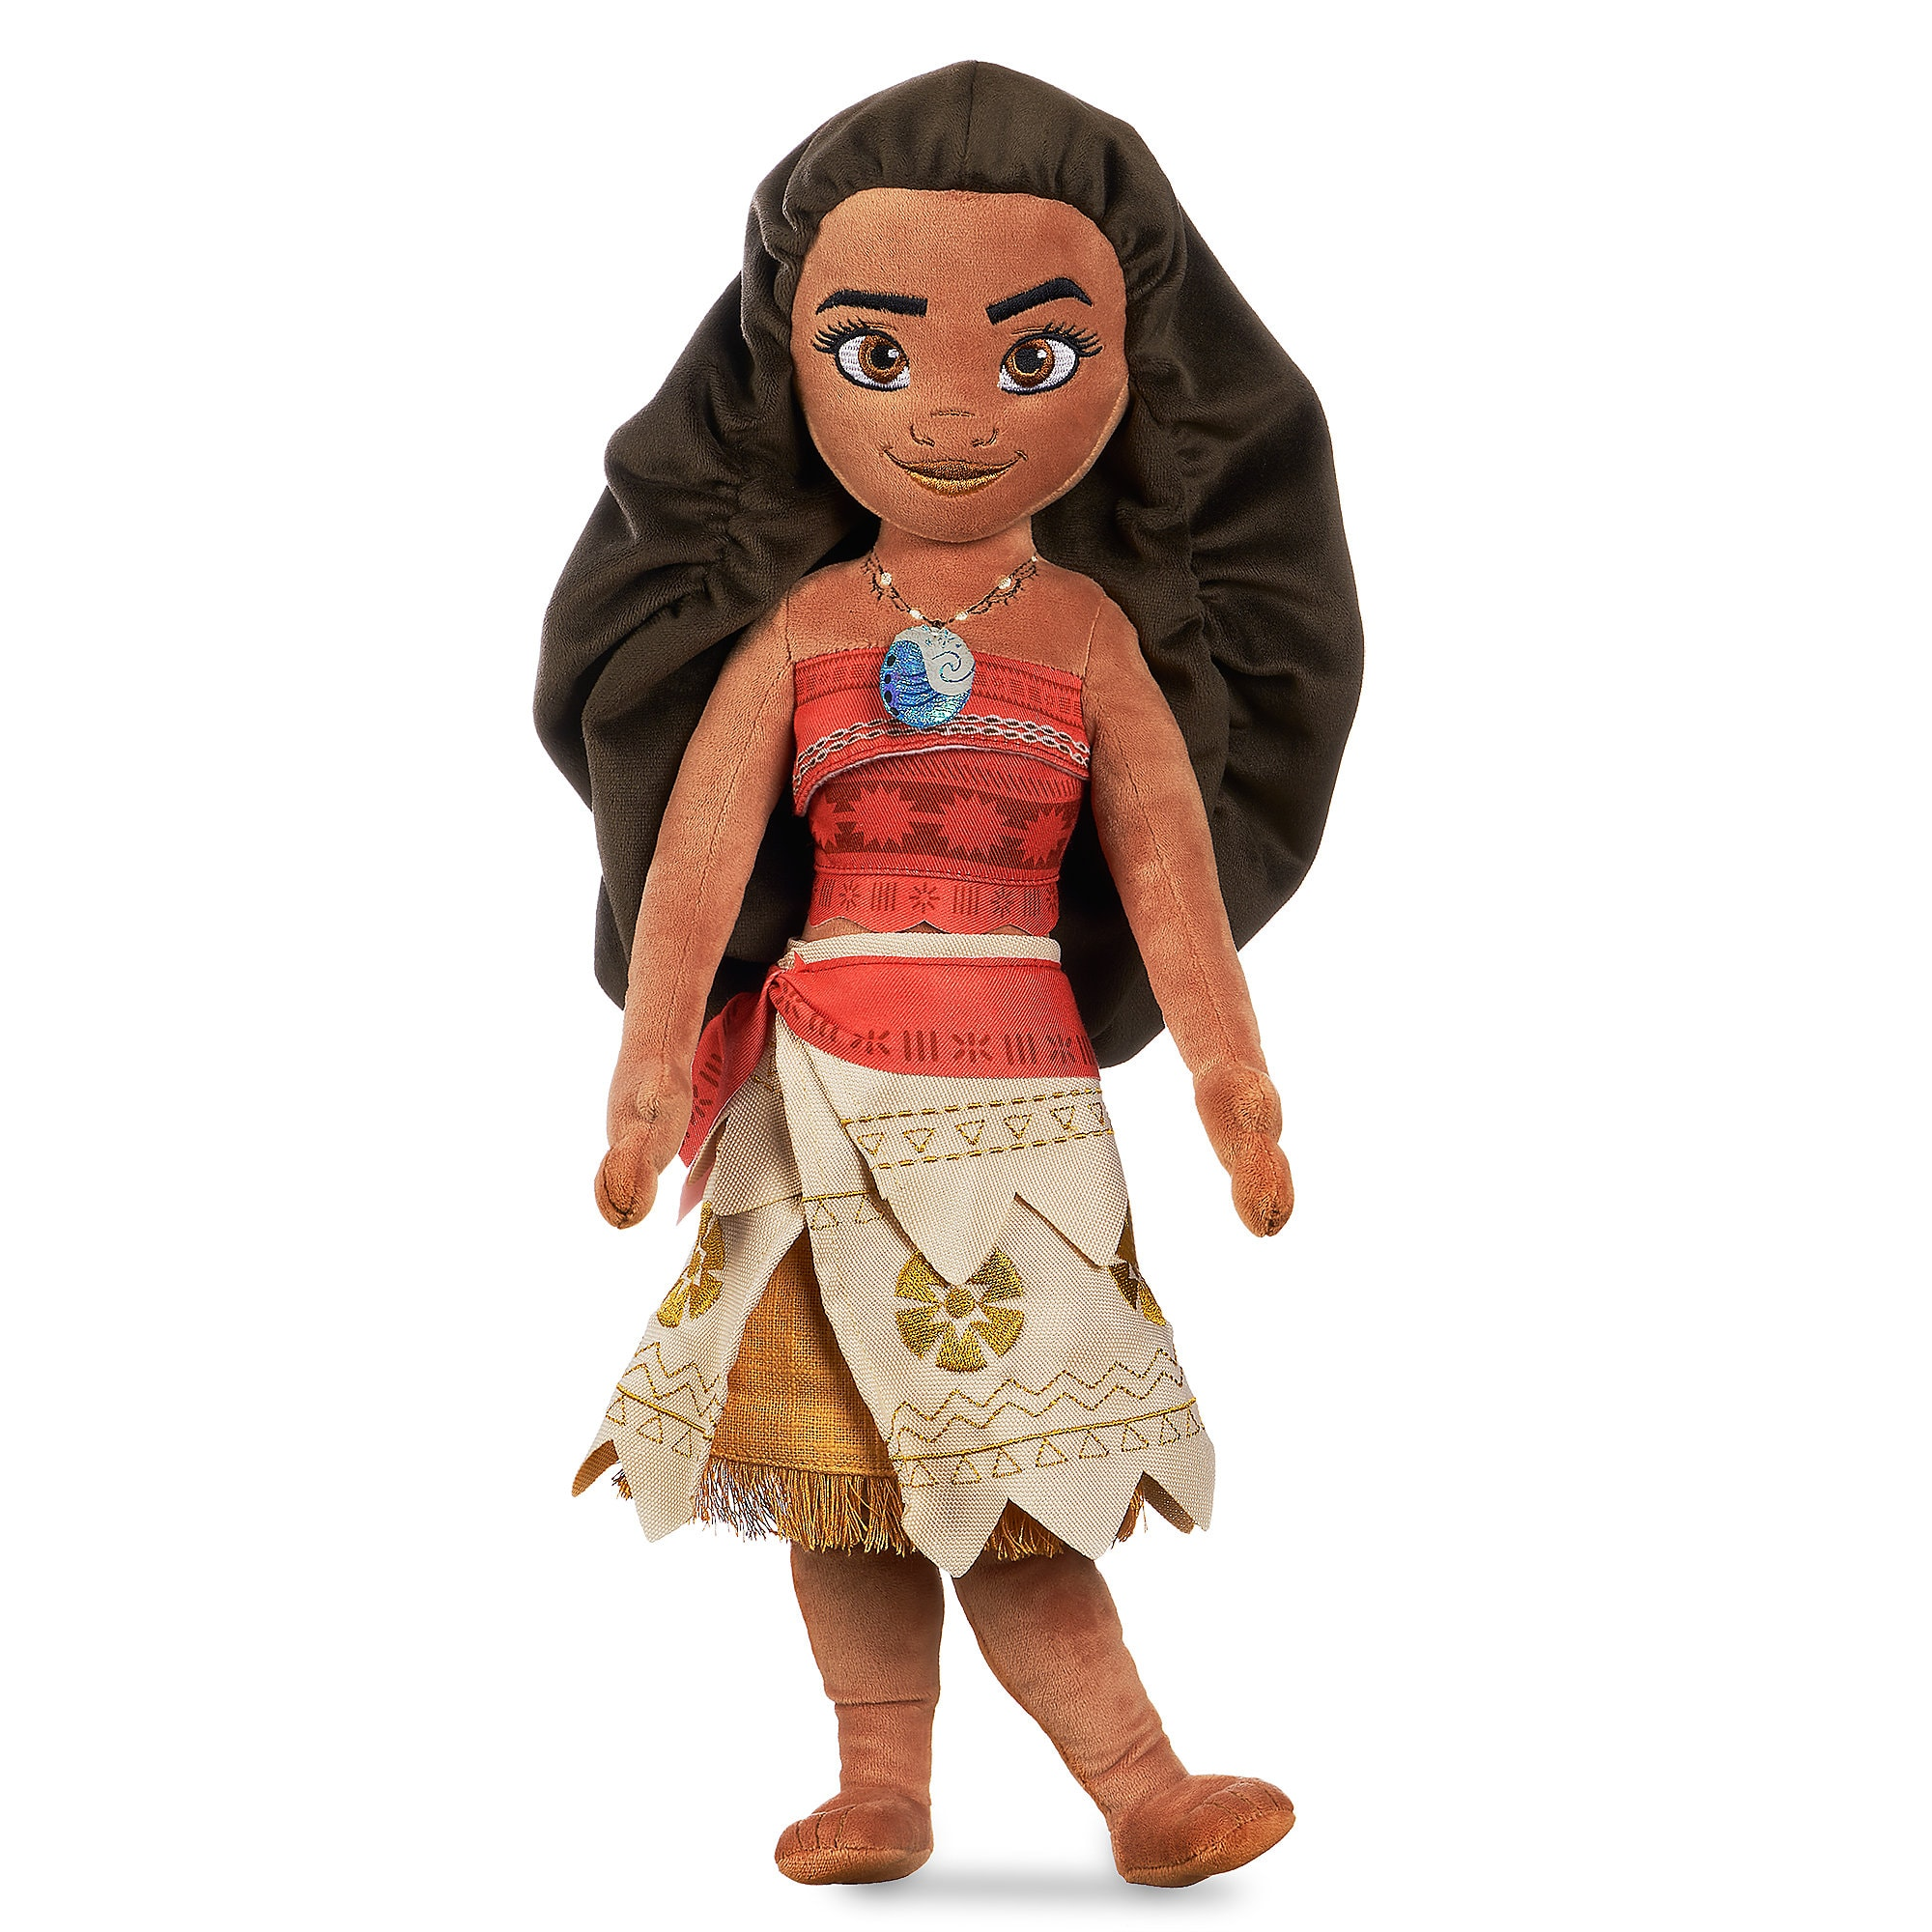 Moana Plush Doll - Medium